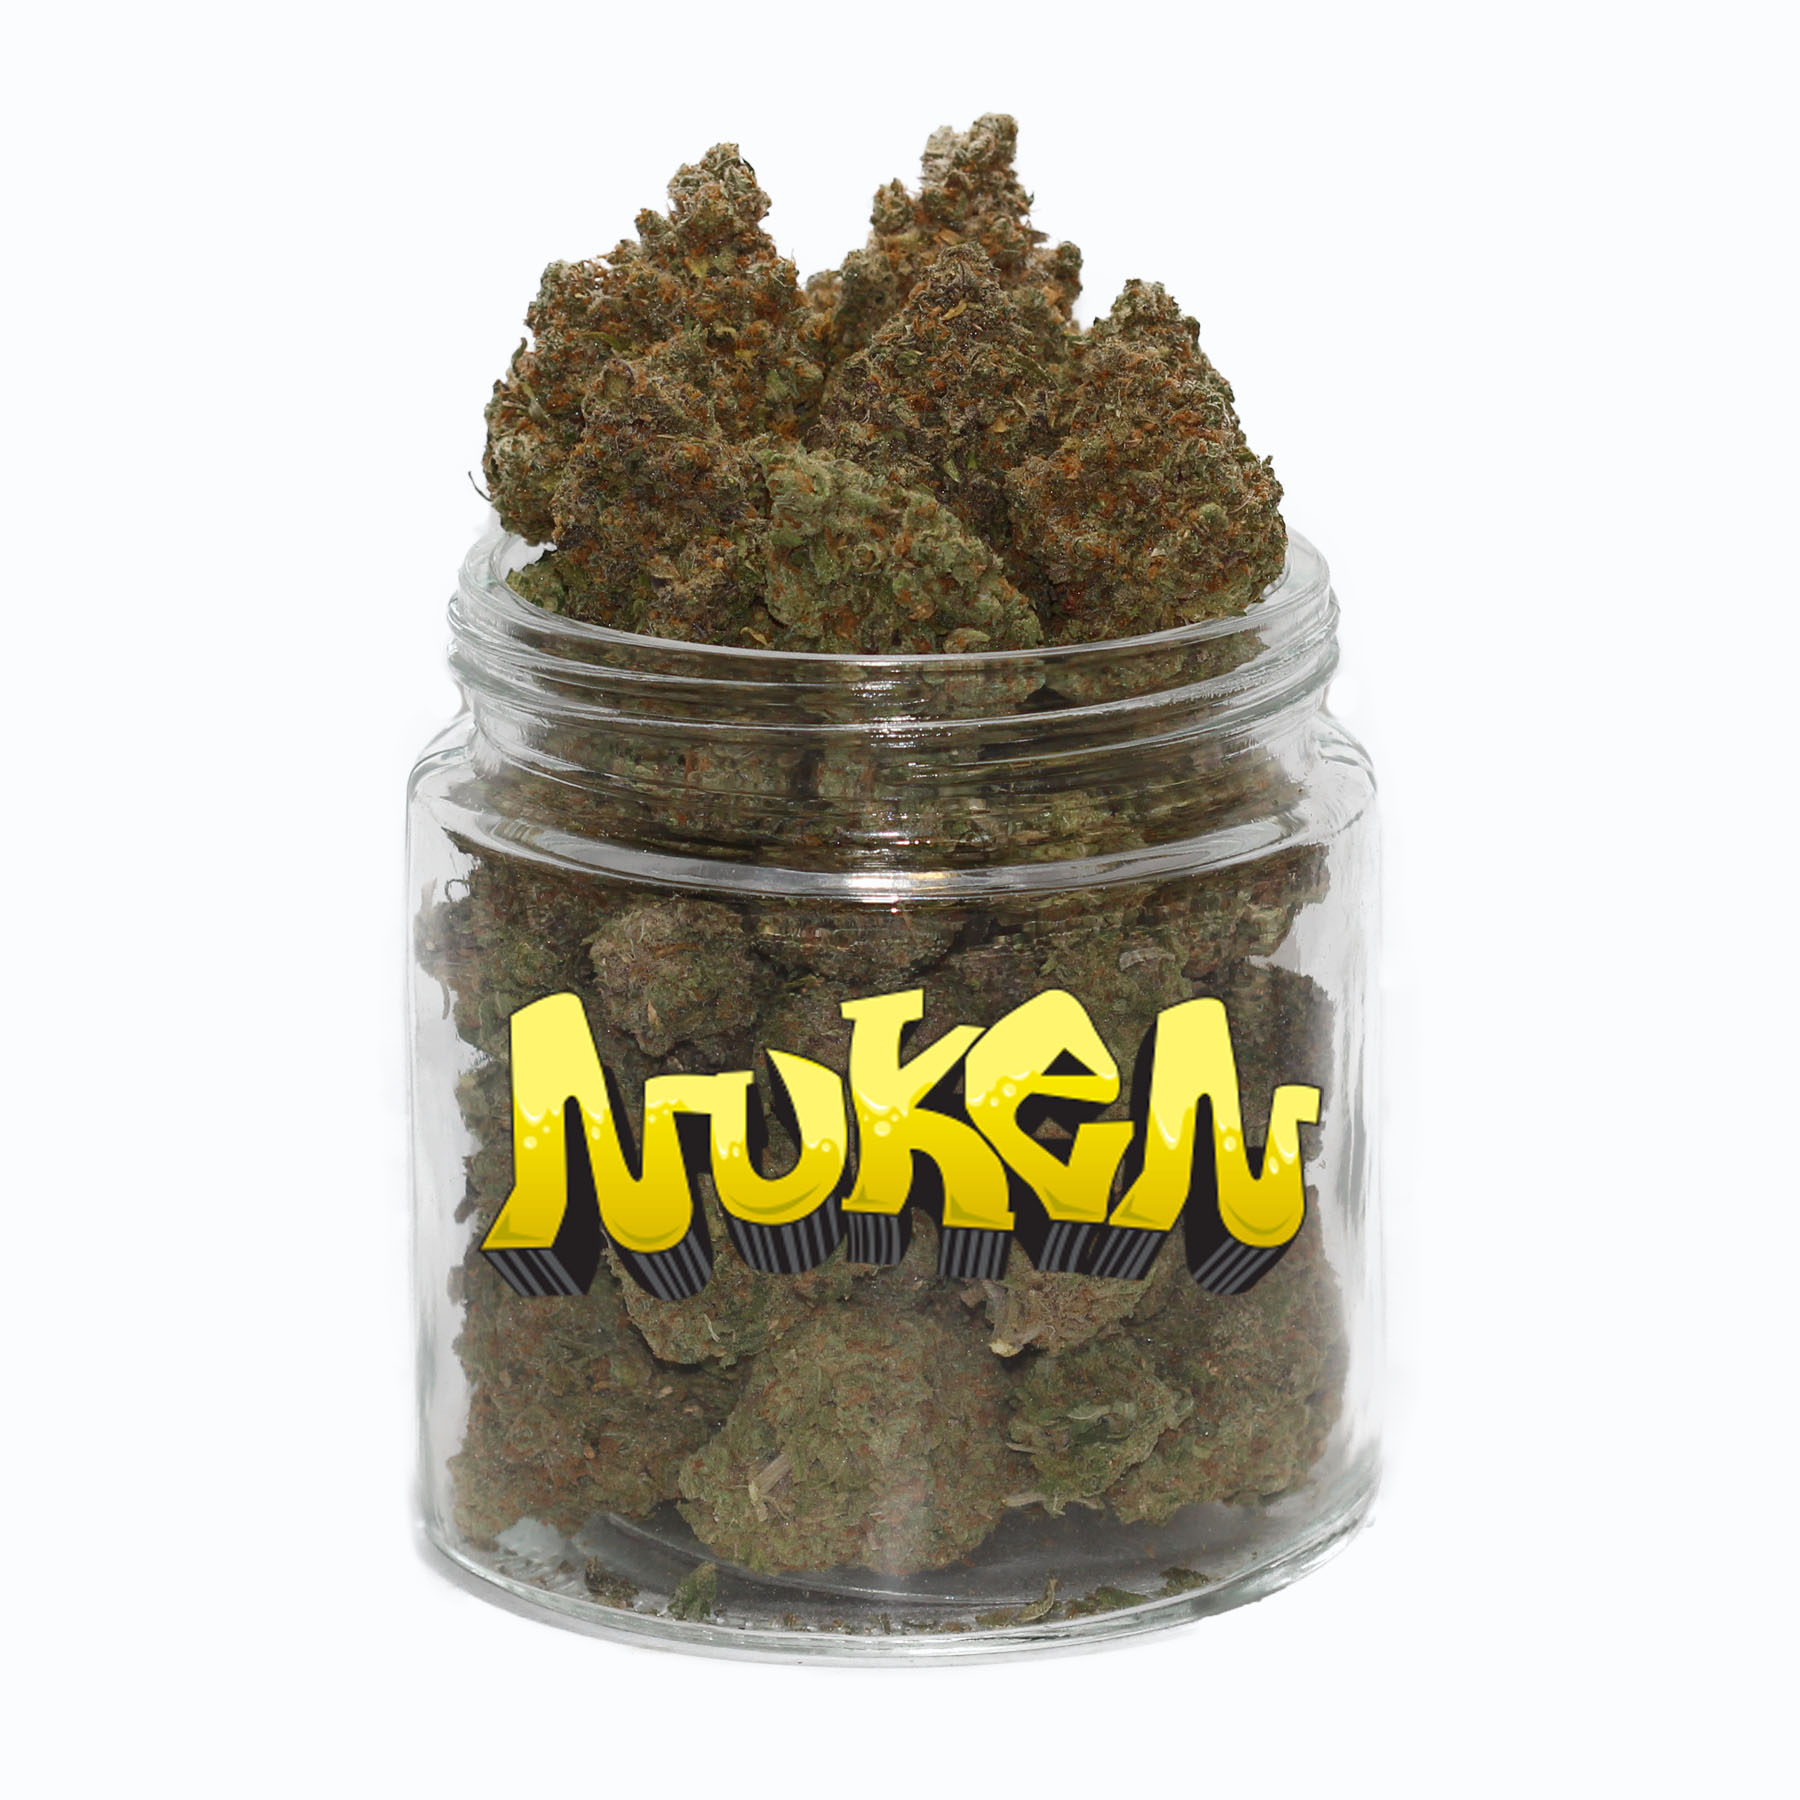 Nuken by Get Kush - Image © 2019 Get Kush. All Rights Reserved.